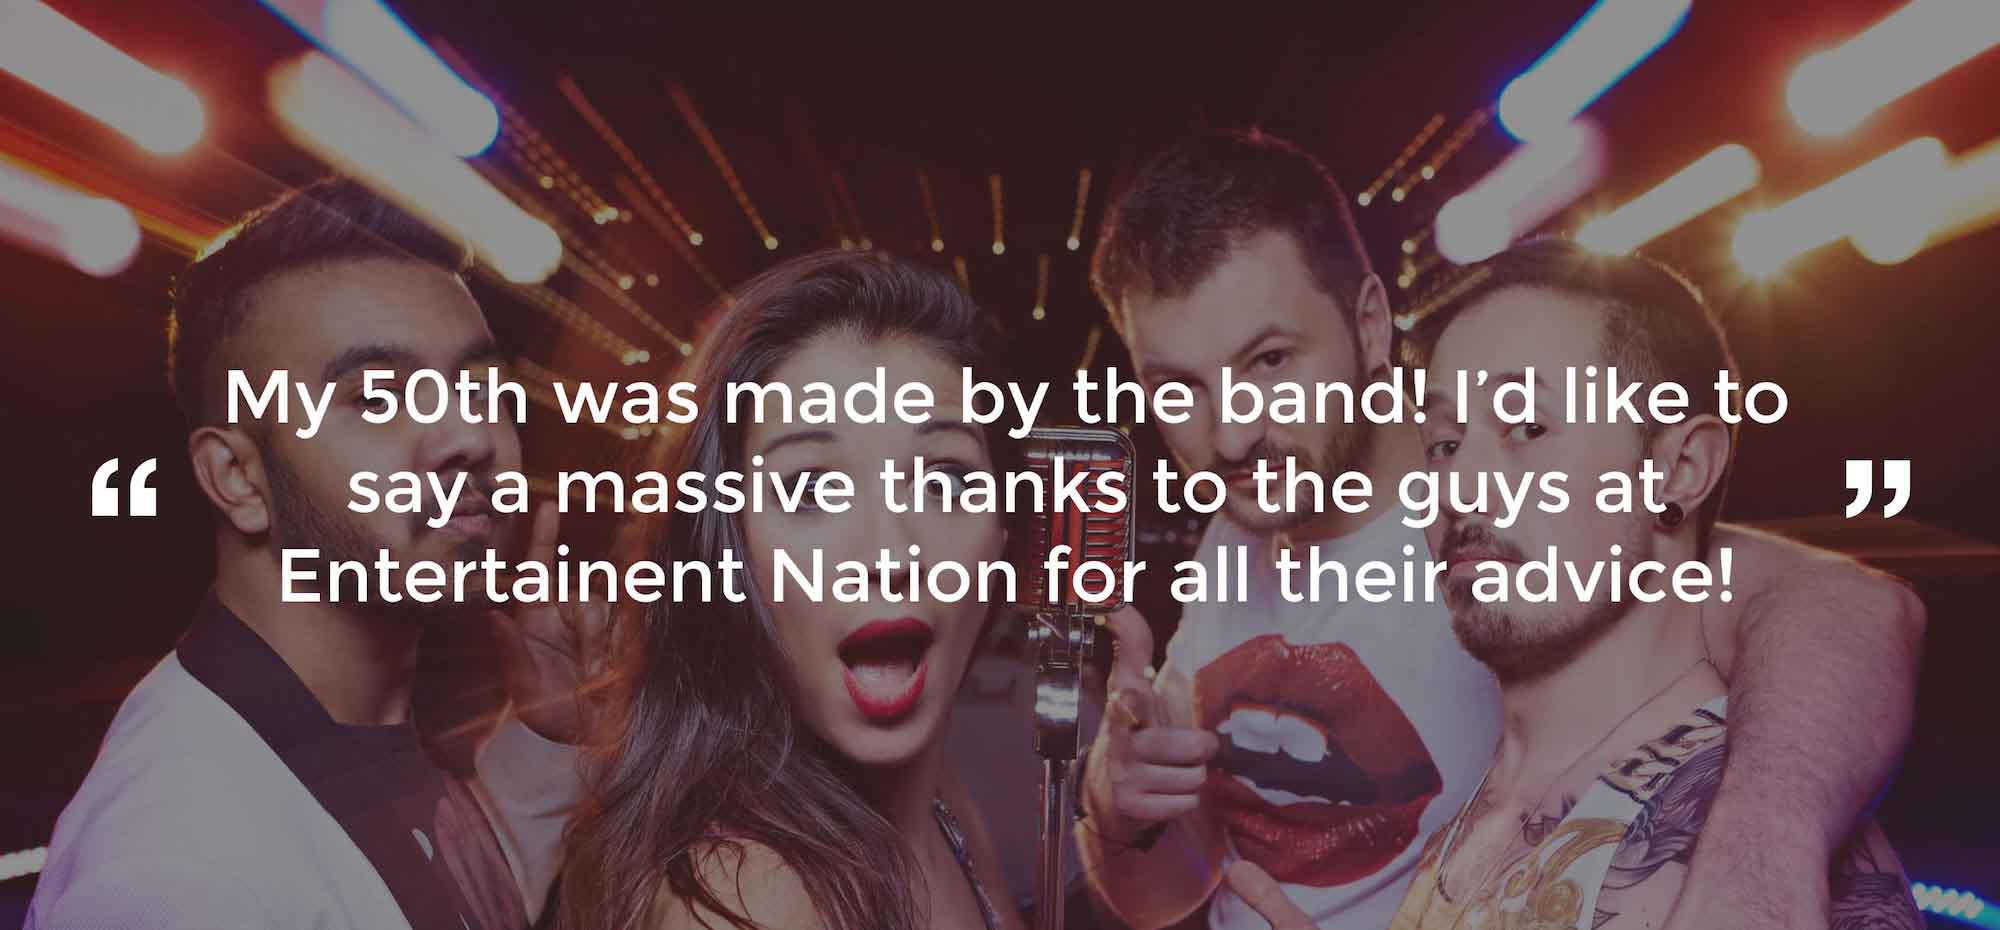 Client Review of a Party Band East Sussex